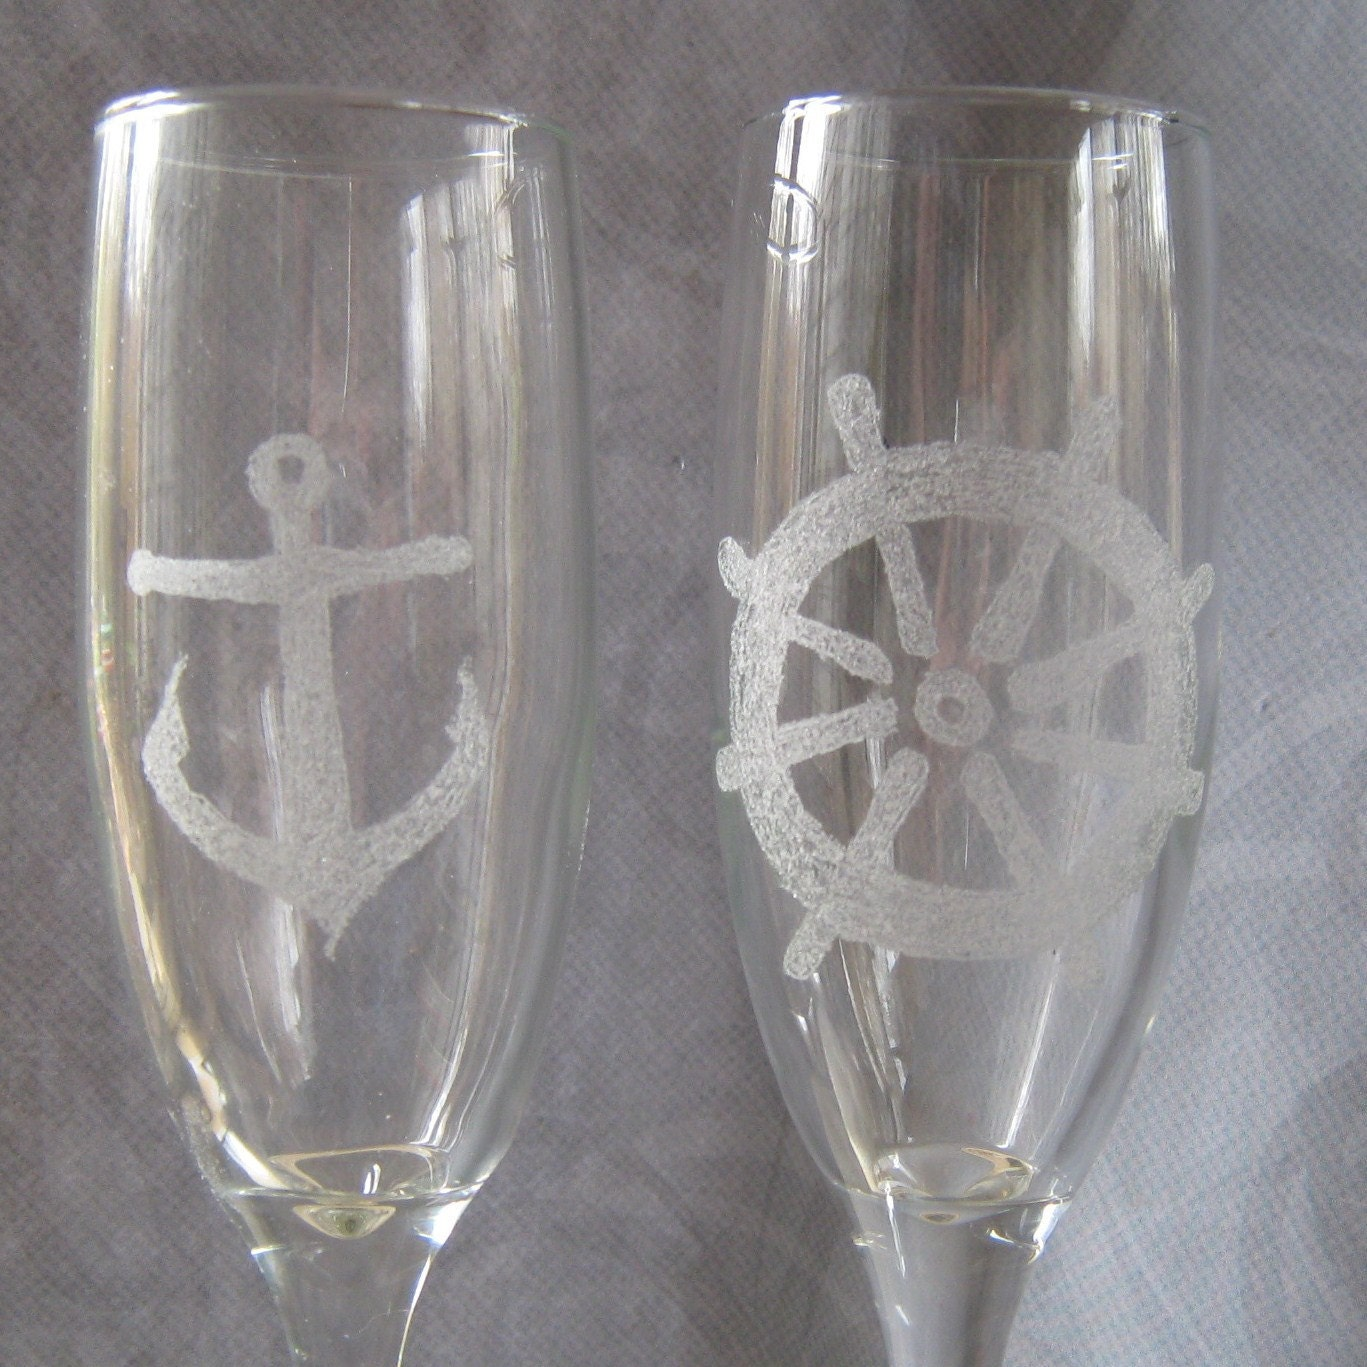 Etched wine glass nautical champagne flute - Fluted wine glasses ...